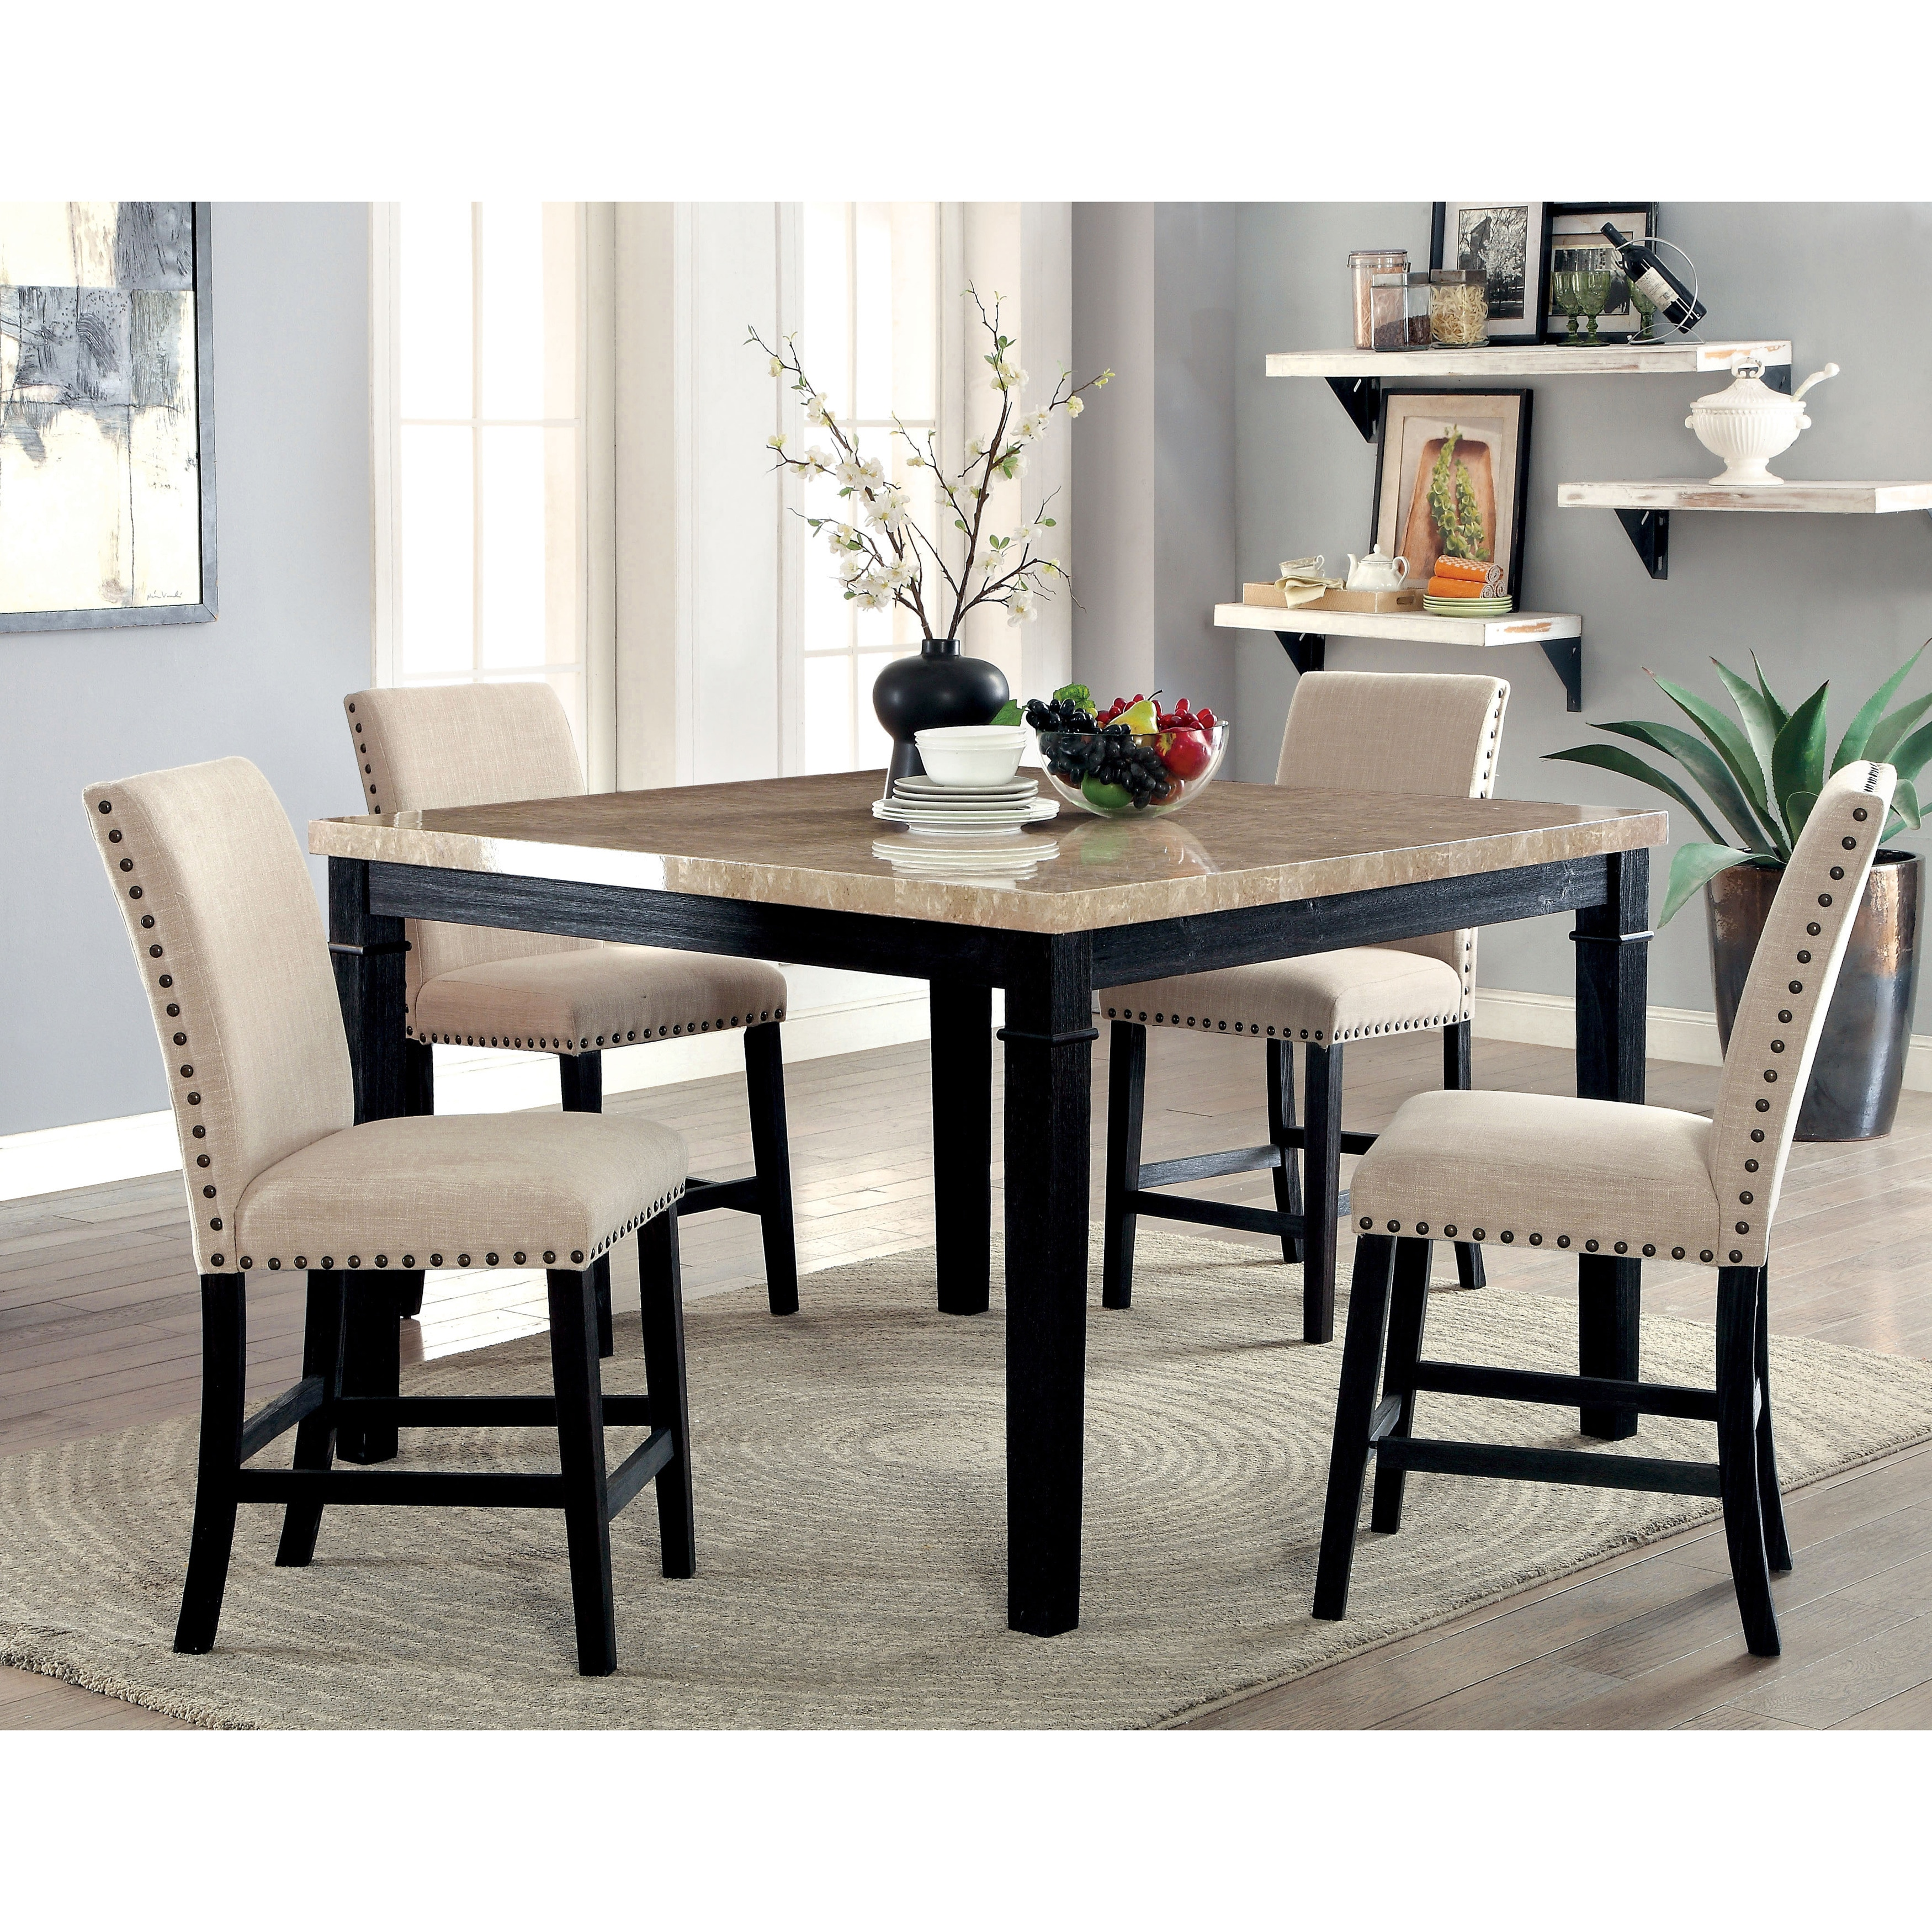 Furniture Of America Denilia Contemporary Ivory Fabric Parson Counter  Height Chairs (Set Of 2)   Free Shipping Today   Overstock.com   21090894